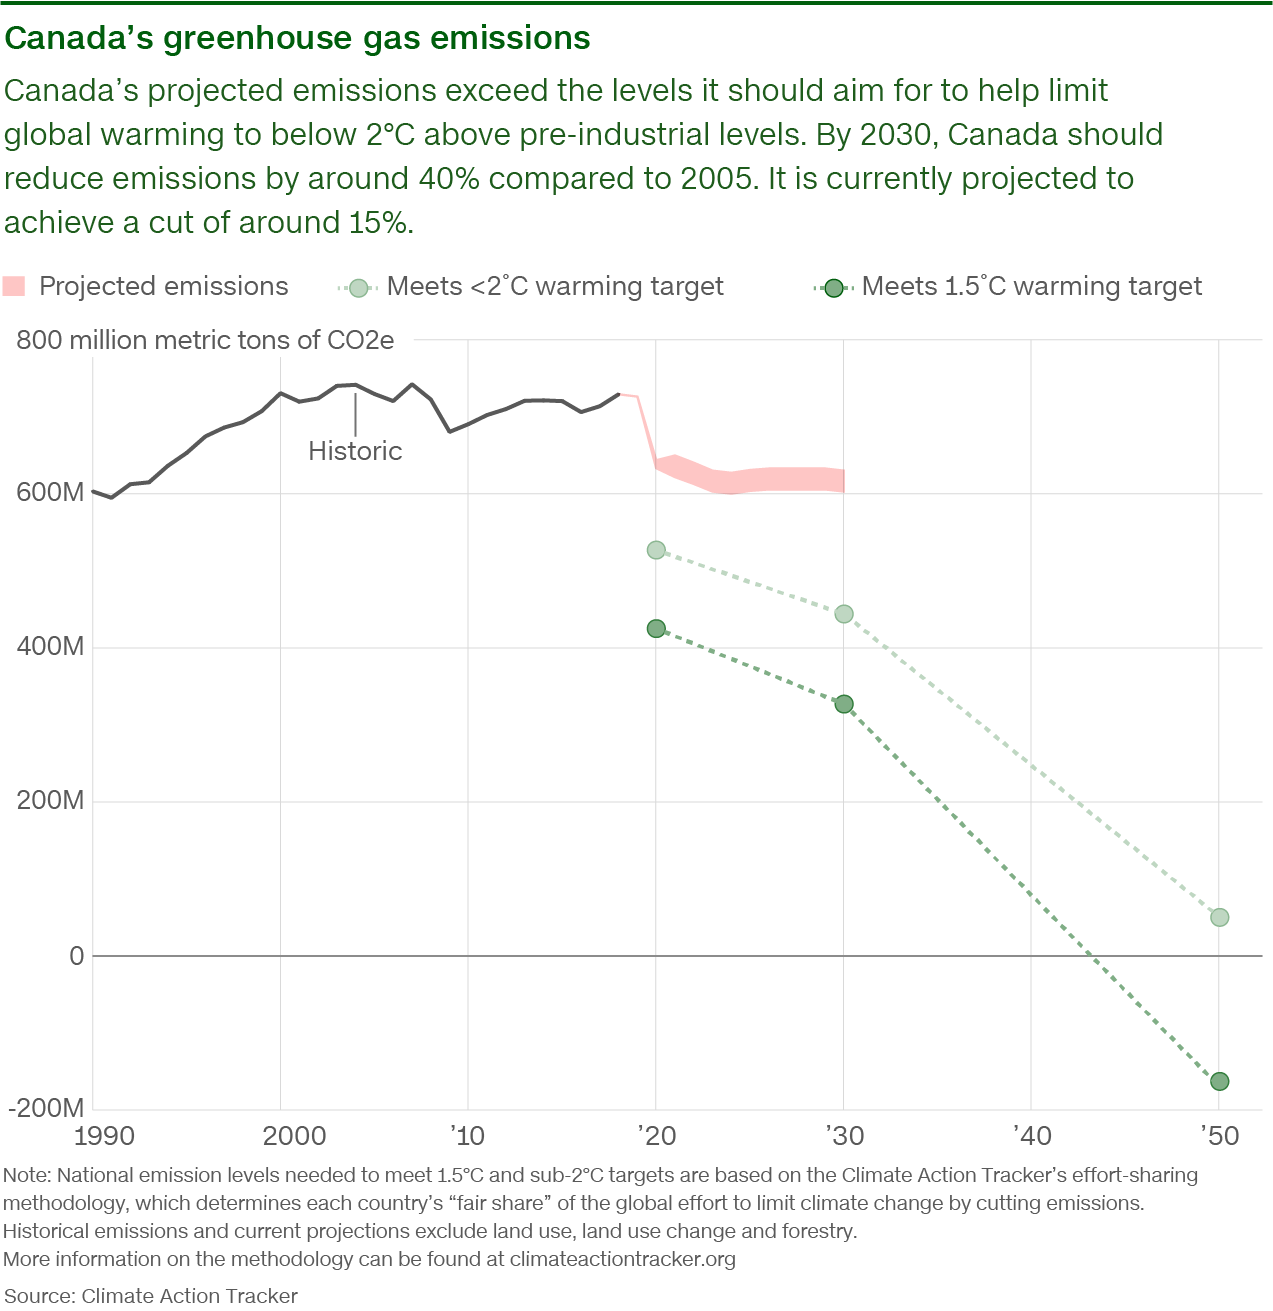 emissions can lg - Covid-19 gave the world a chance to fix the climate crisis. We're about to waste it. -